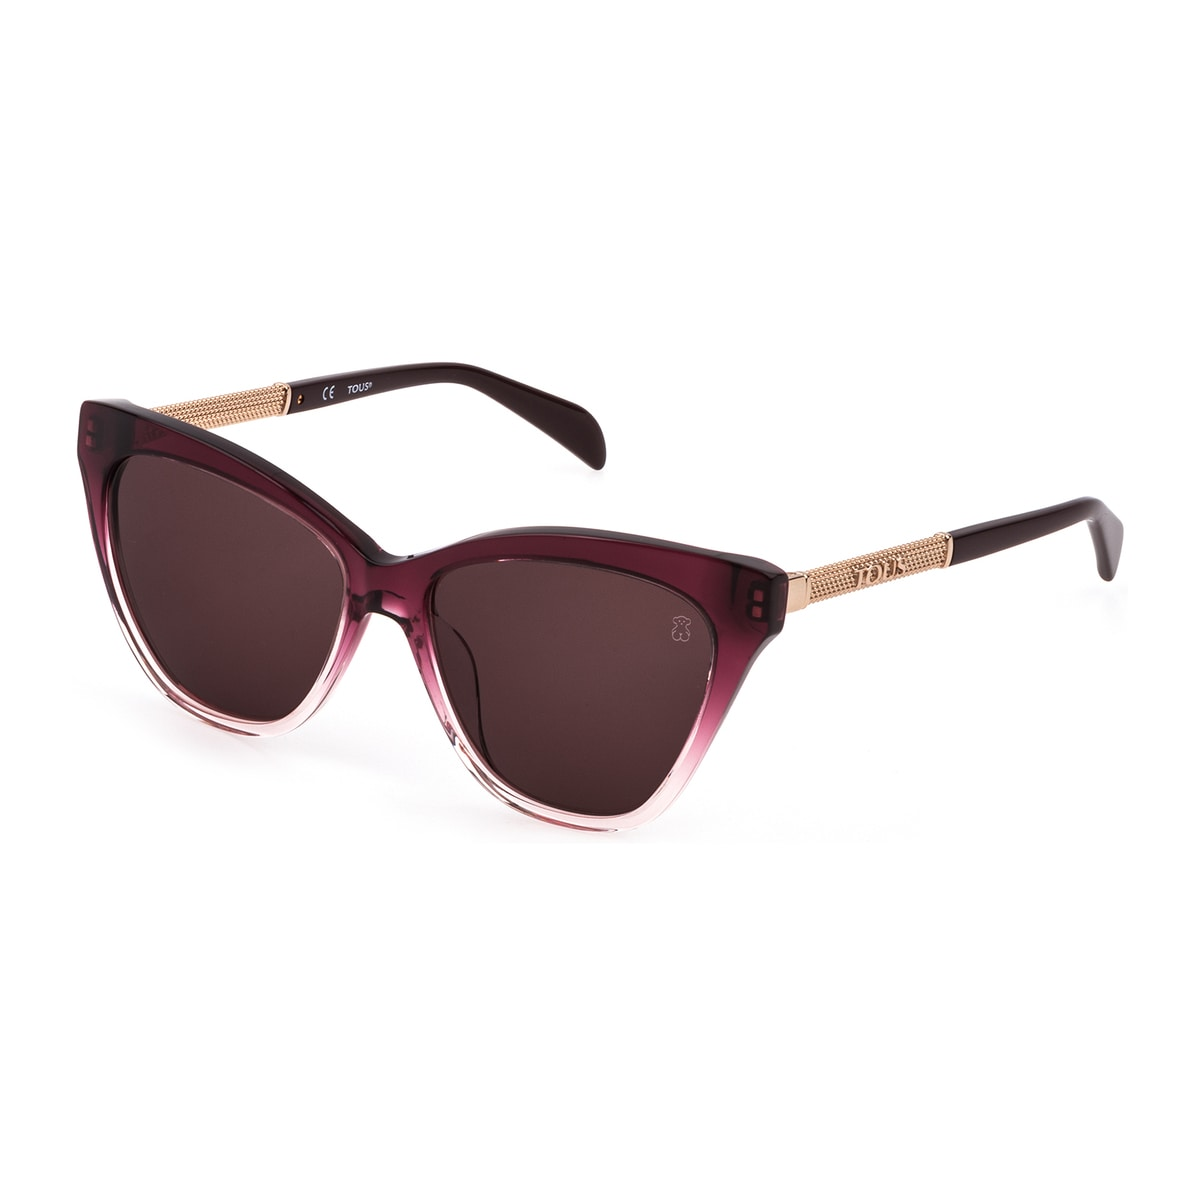 Burgundy Colored Mesh Sunglasses